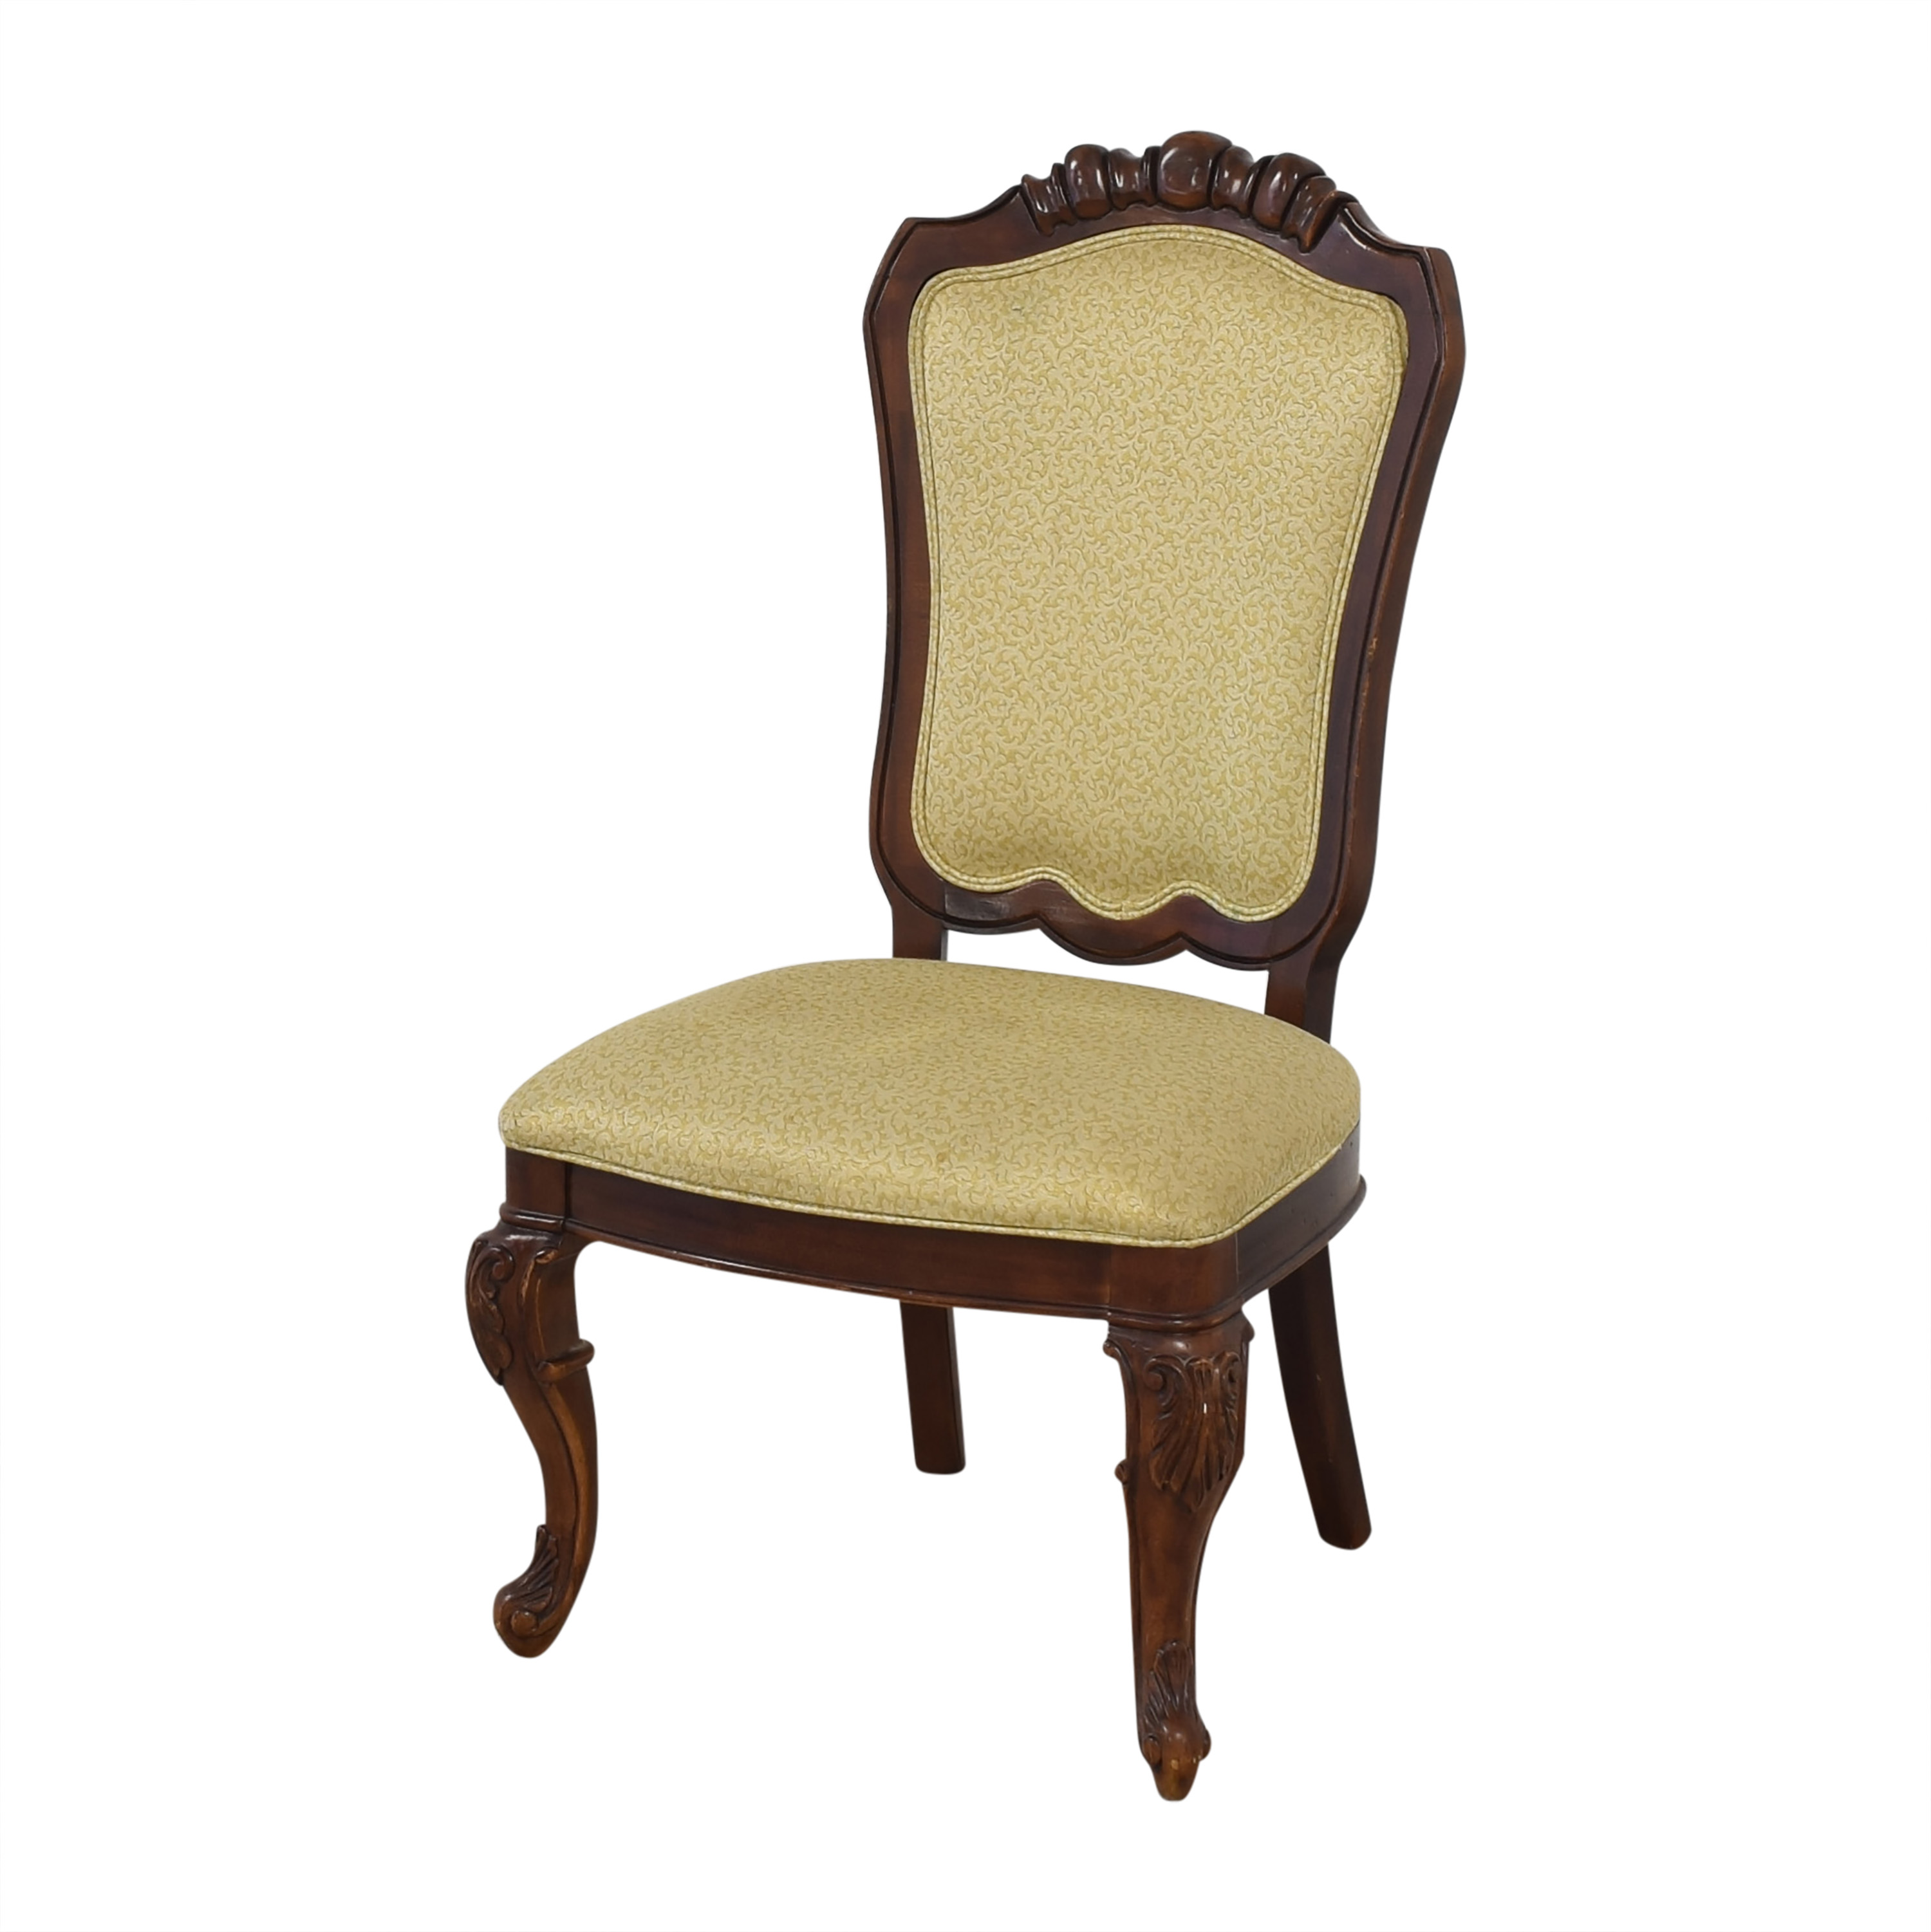 Thomasville Thomasville Upholstered Dining Side Chairs Dining Chairs